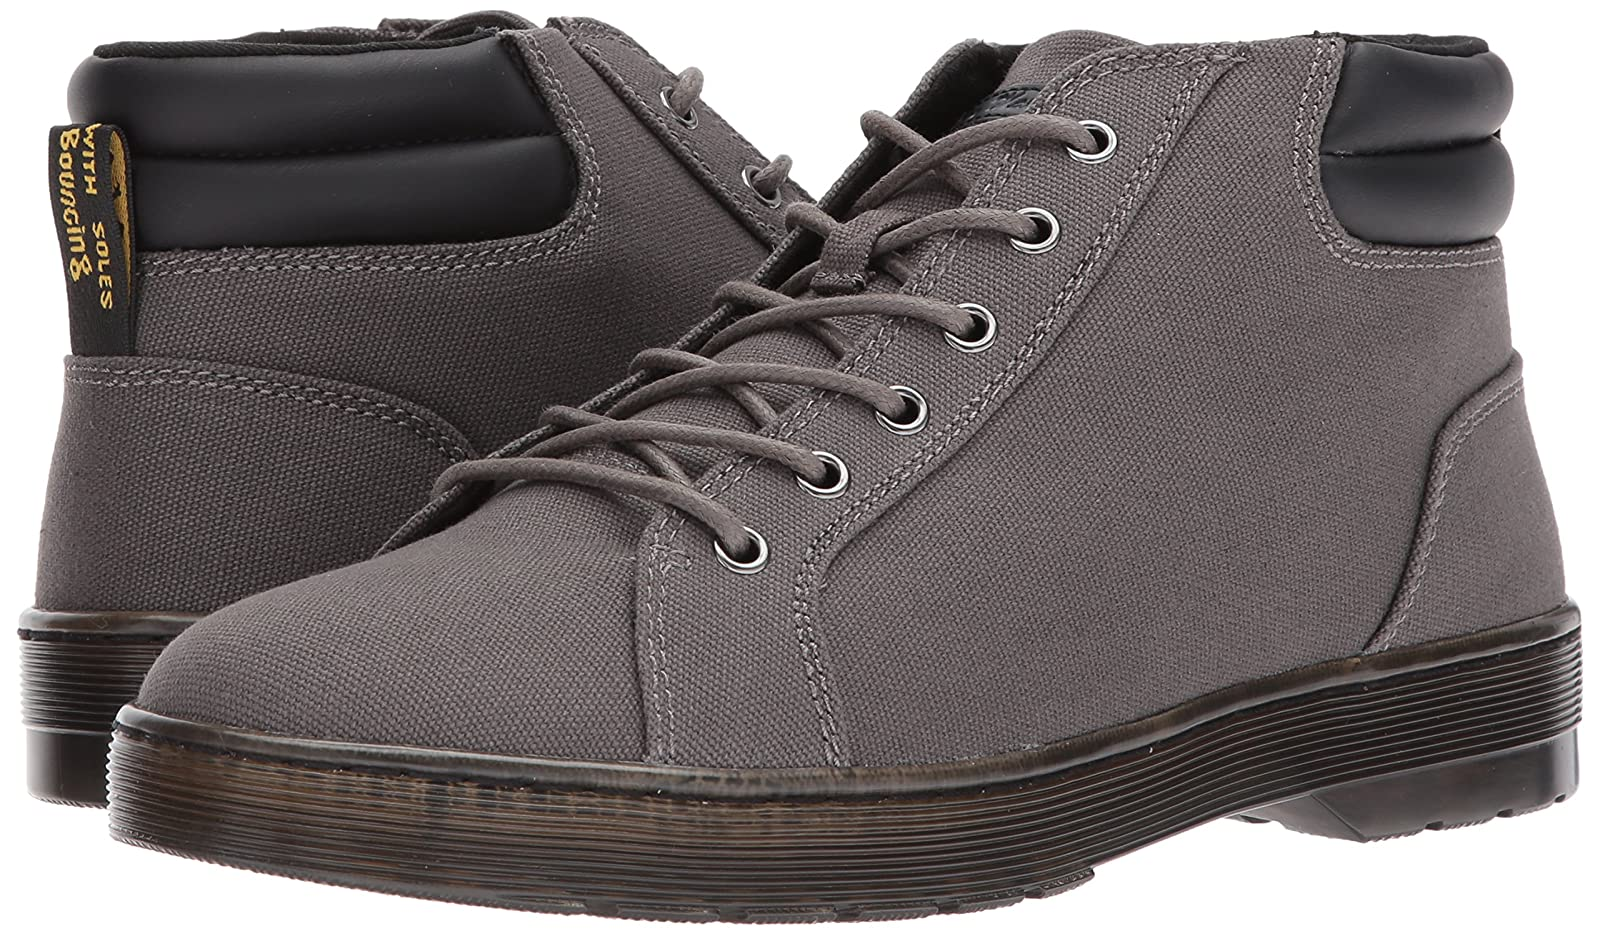 Dr. Martens Men's Plaza Gunmetal Fashion Boot R22864029 - 6